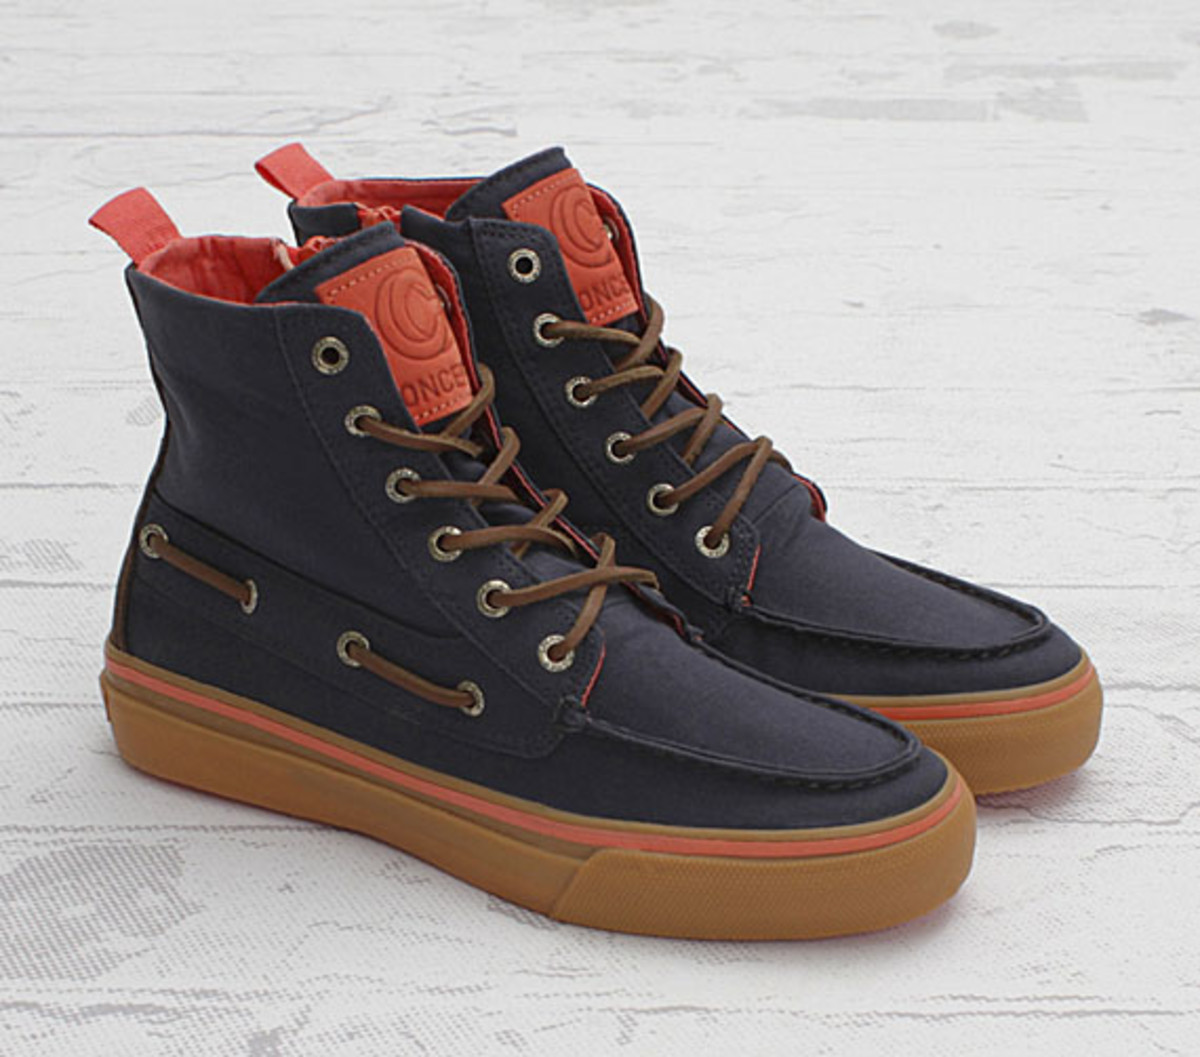 concepts-sperry-top-sider-bahama-boot-fall-2012-12